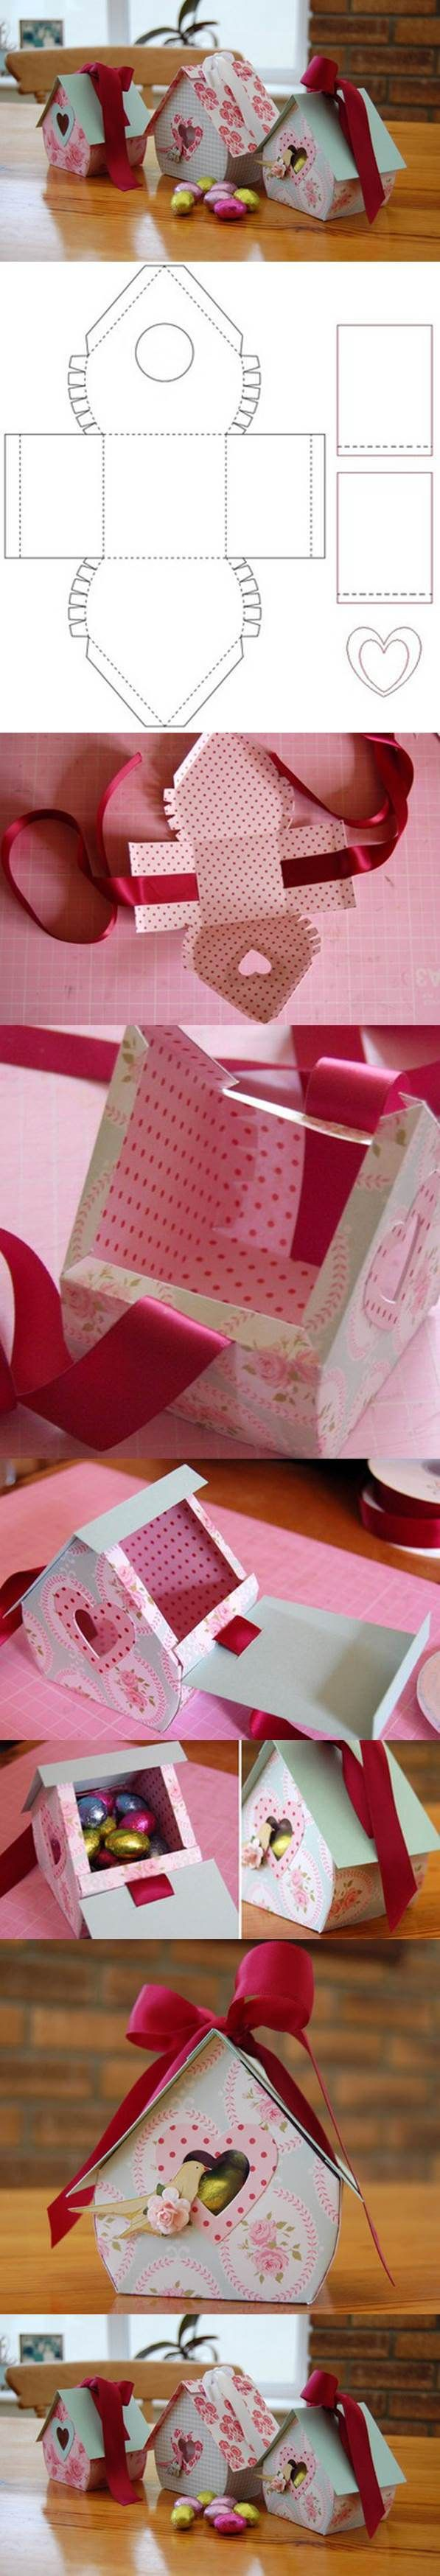 Diy and crafts image | Woman's heaven